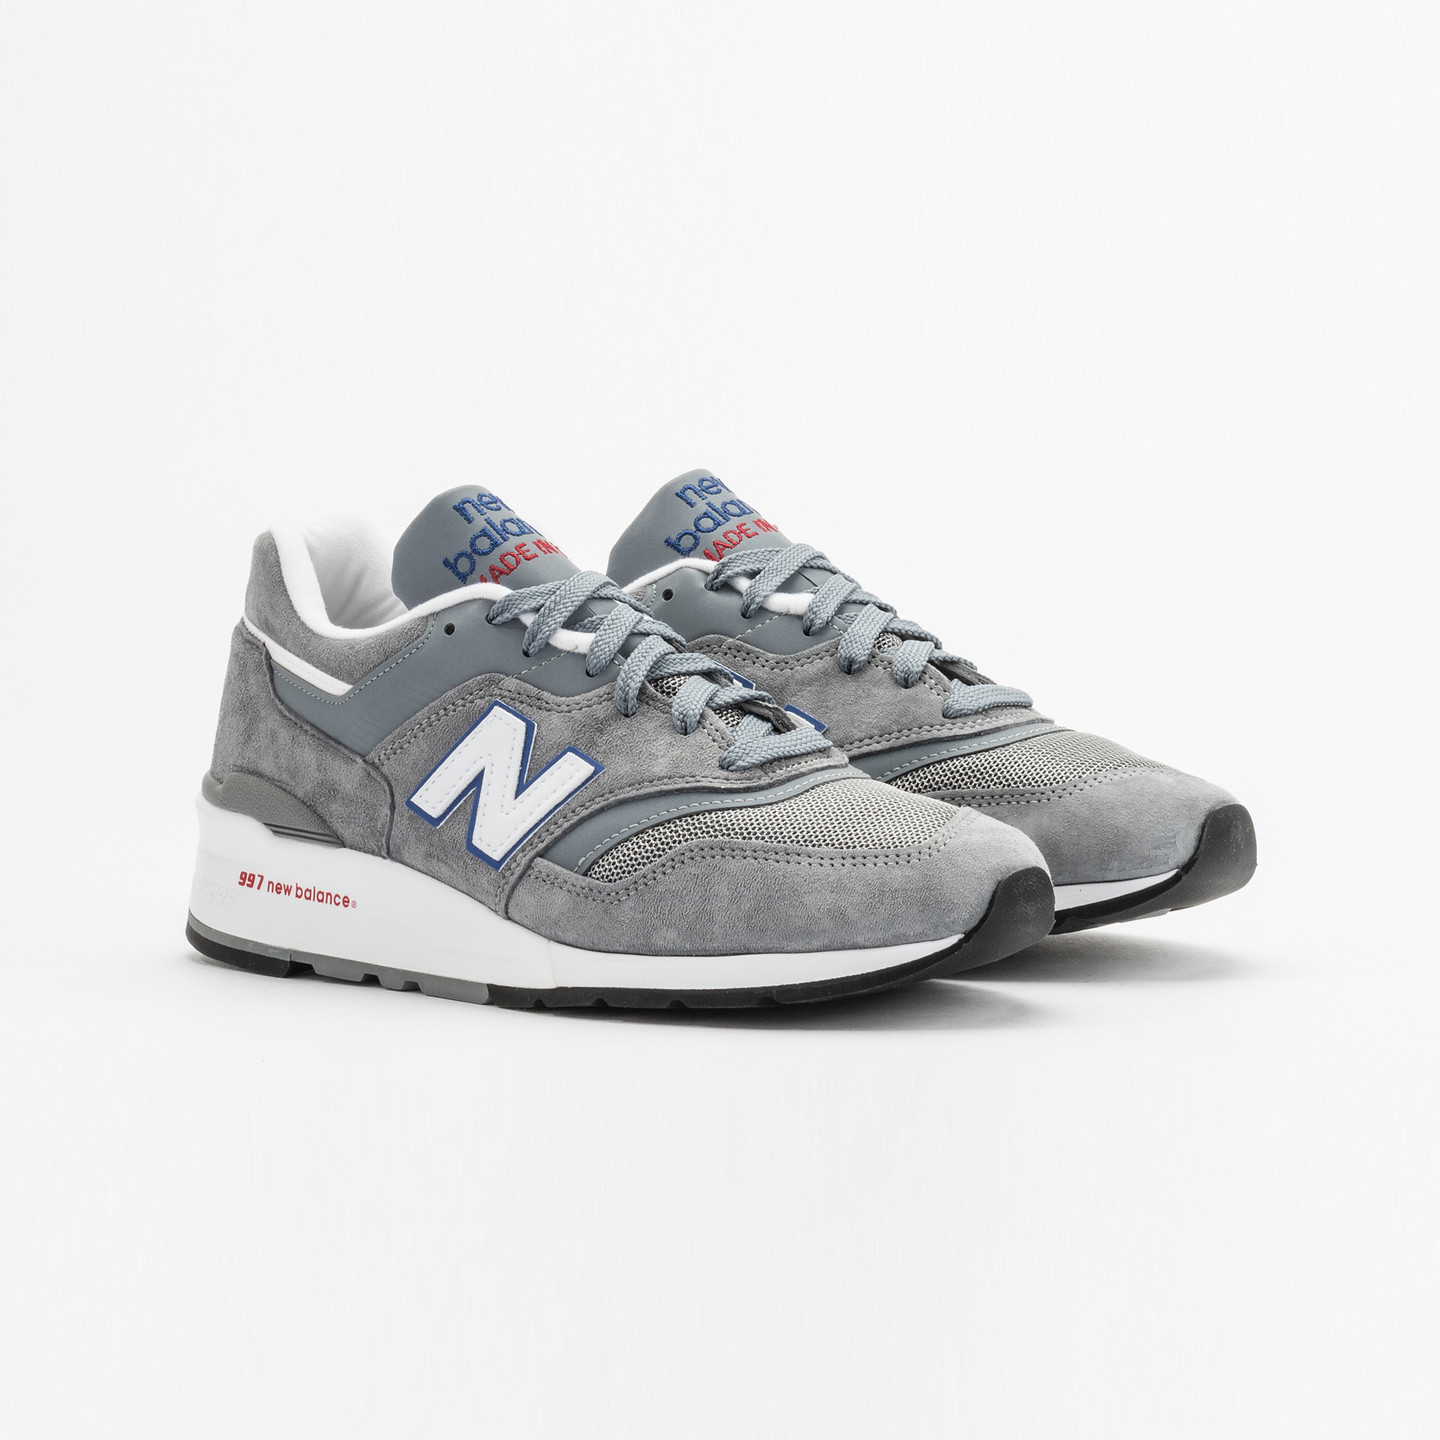 New Balance M997 Made in USA Grey / Blue / Red M997CNR-43